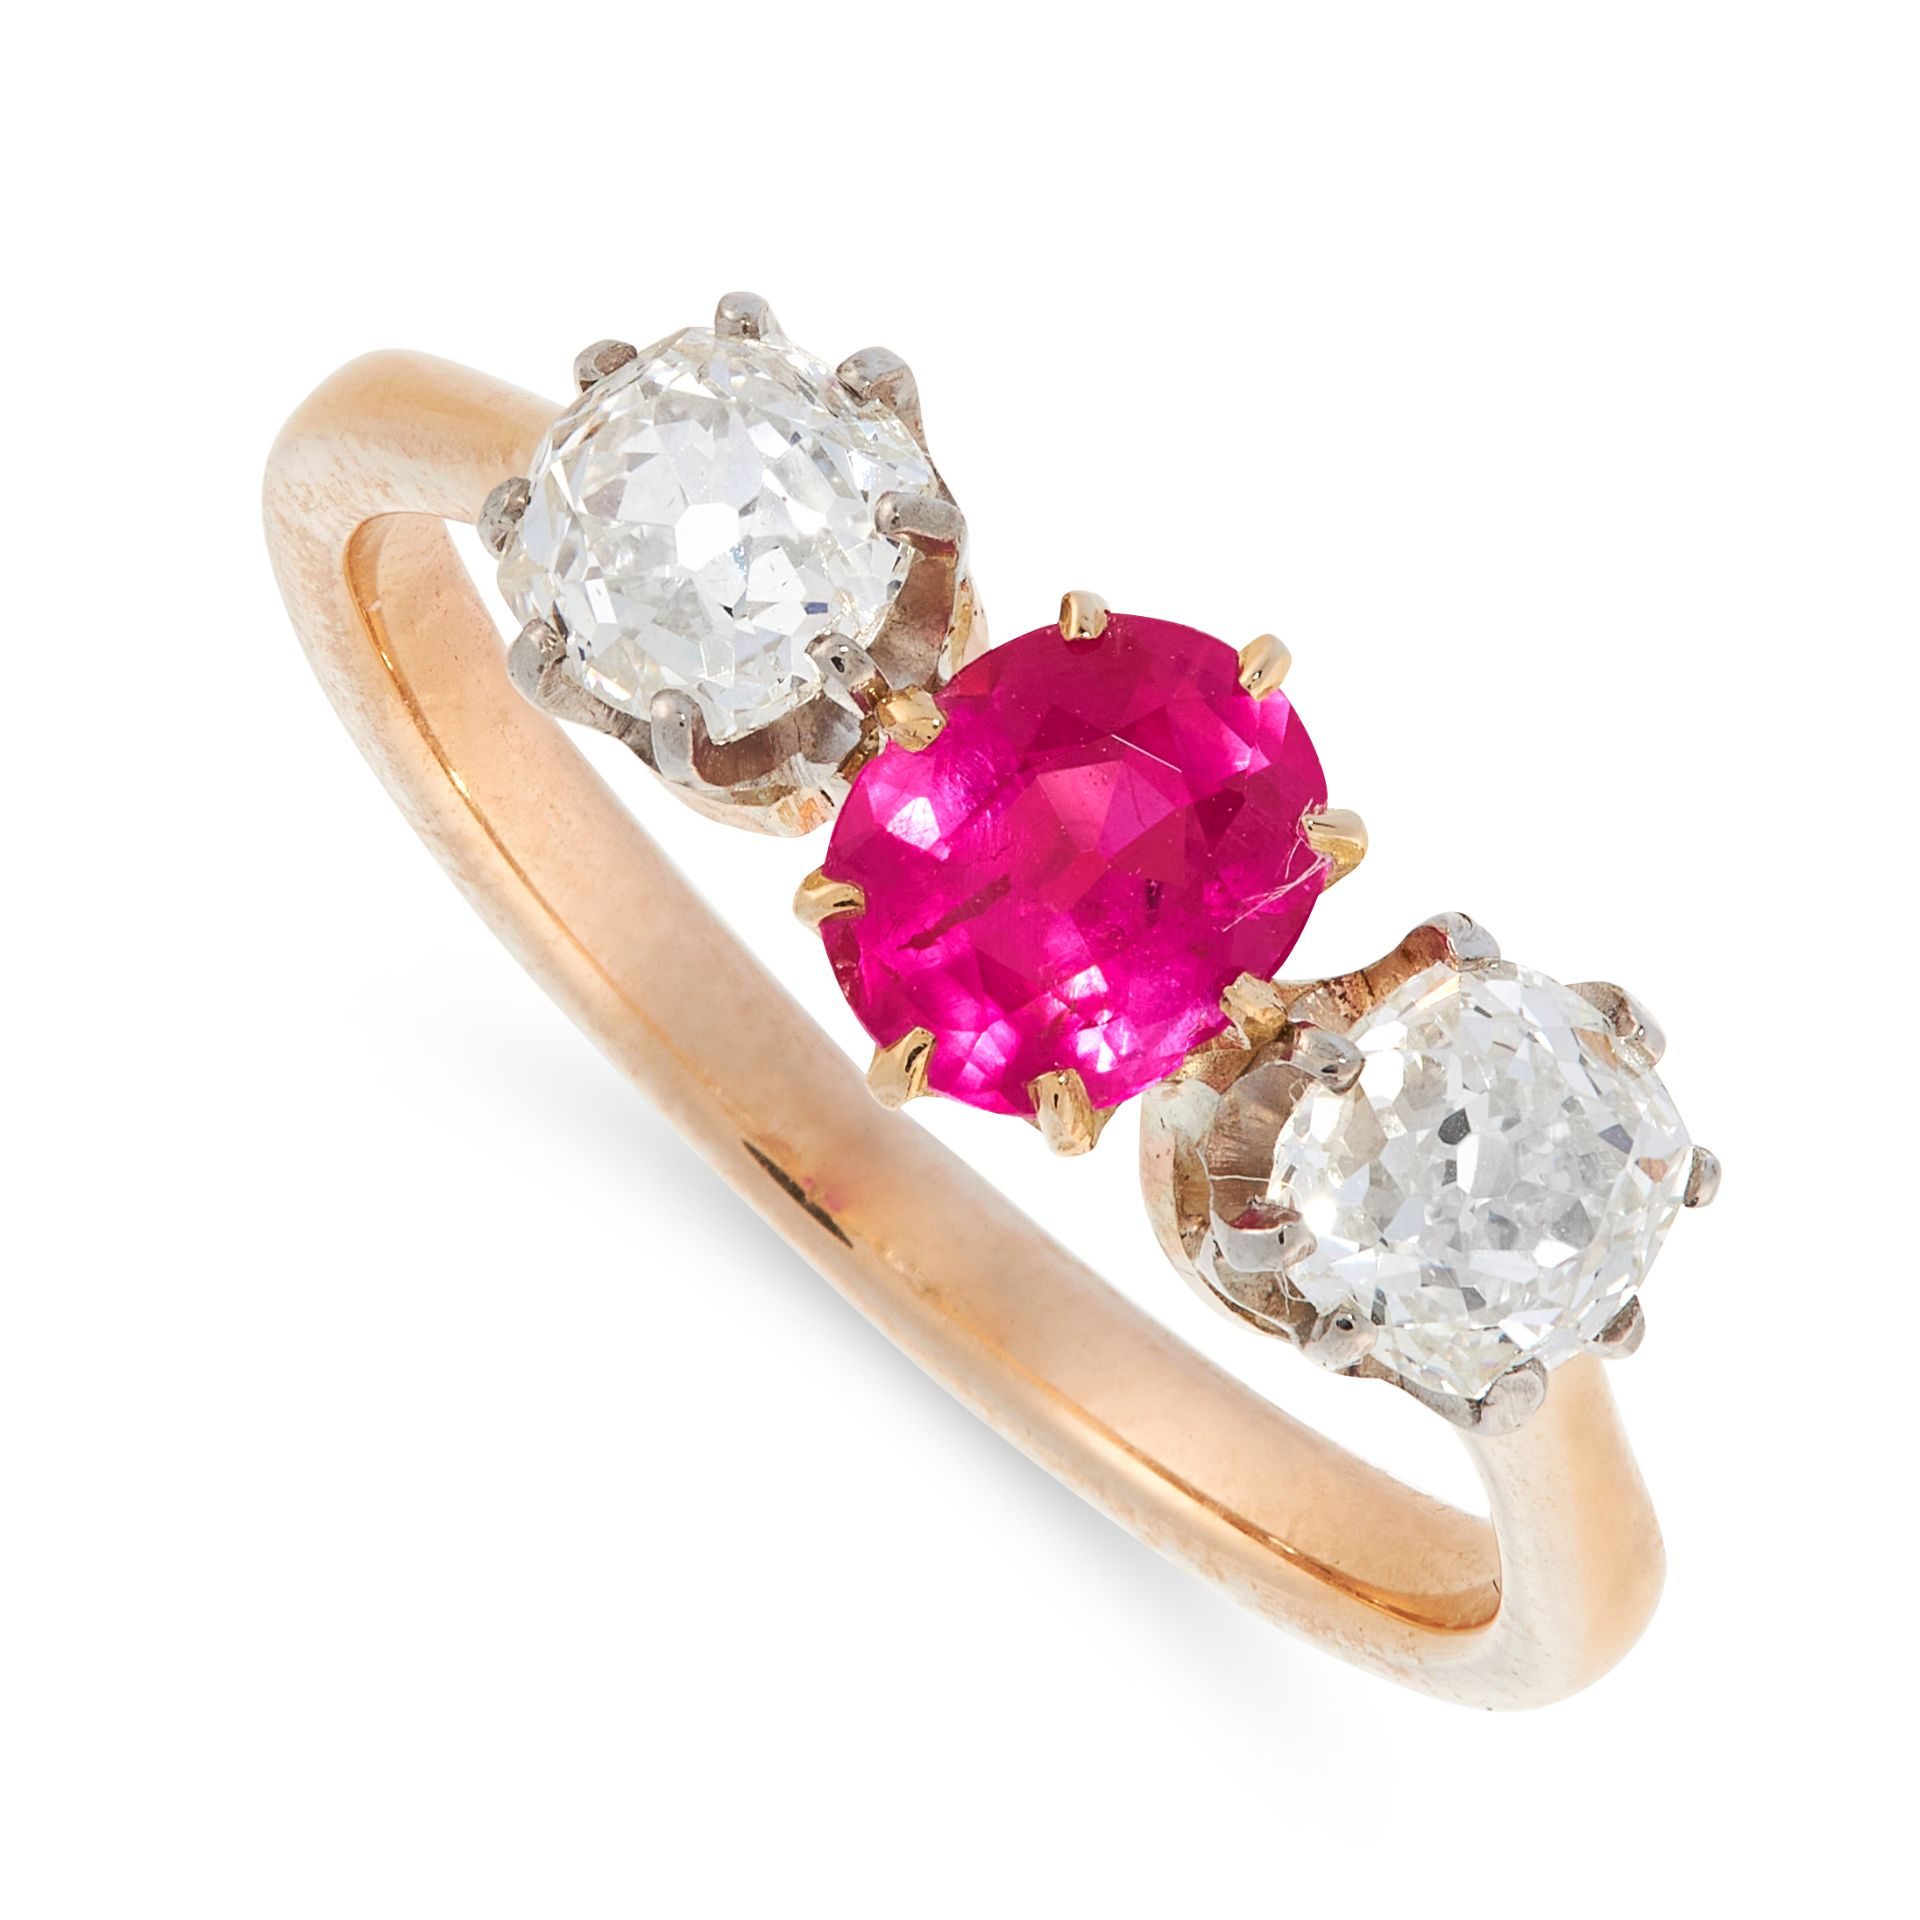 A BURMA NO HEAT RUBY AND DIAMOND DRESS RING in 18ct yellow gold, set with a cushion cut ruby of 0.76